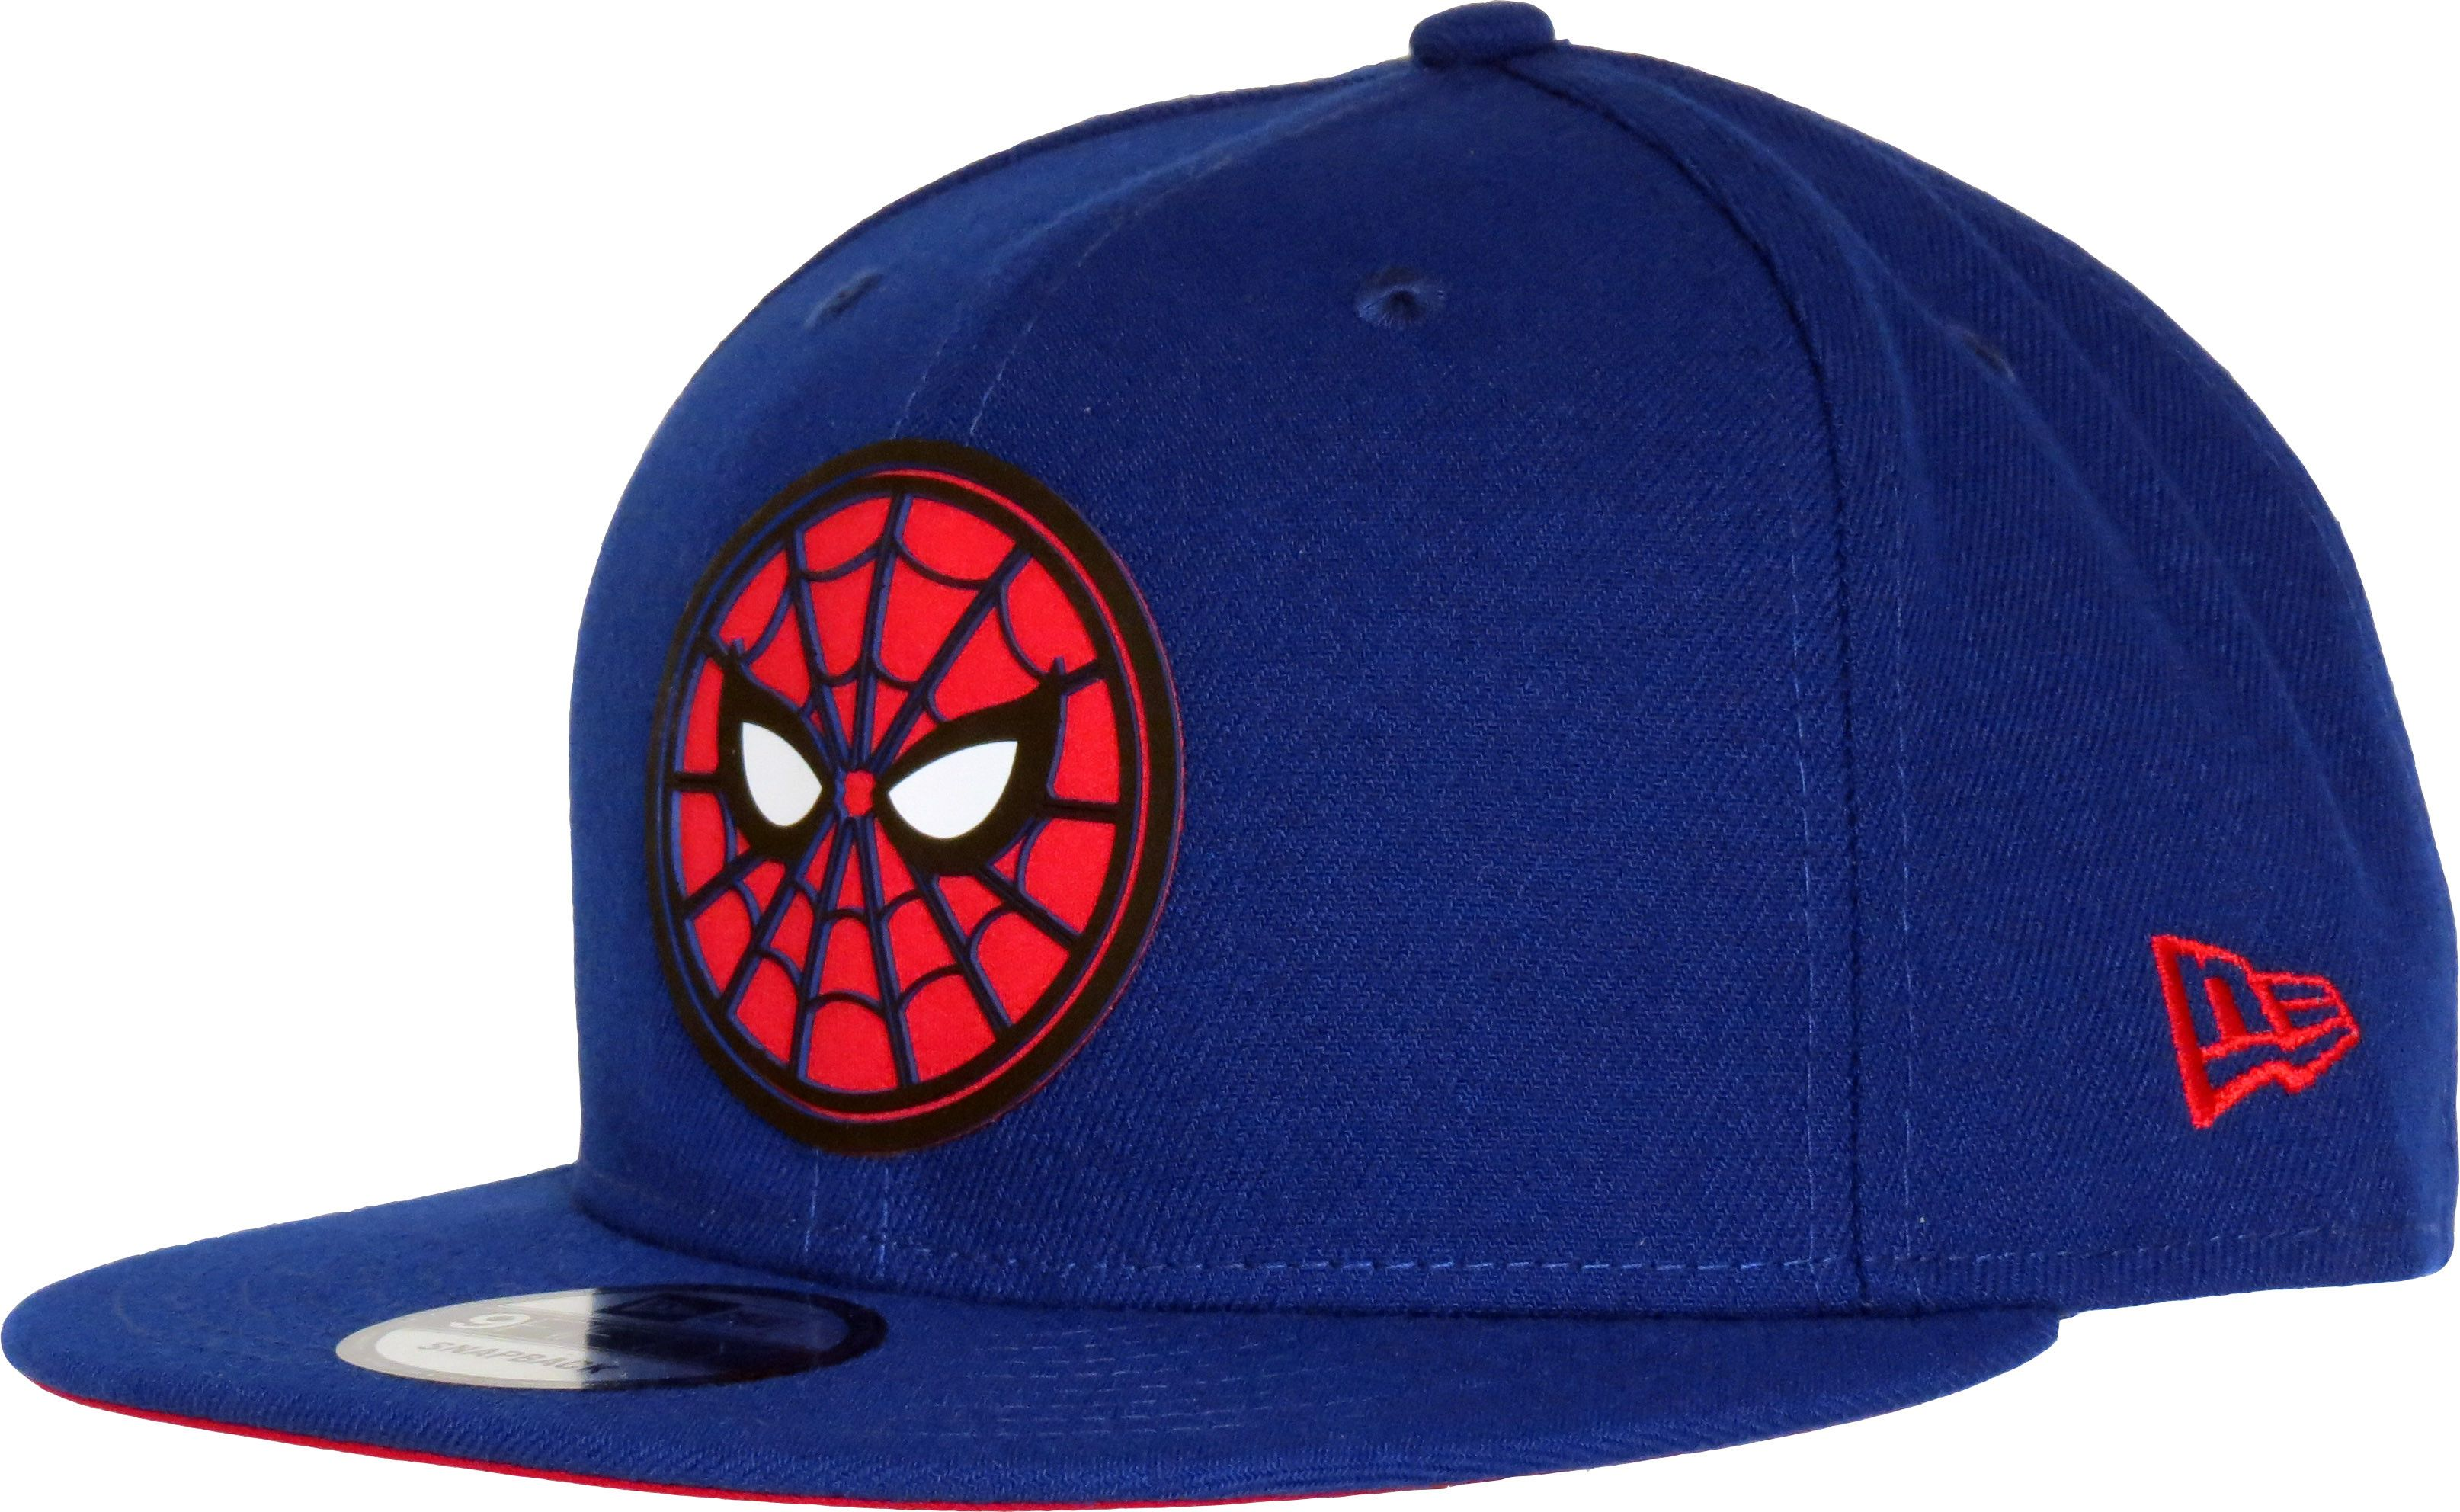 brand new e3290 f609b order sold out tokidoki marvel spider man web jump new era 9fifty snapback  cap d9118 f8efb  order new era 950 spiderman homecoming snapback cap blue  with ...